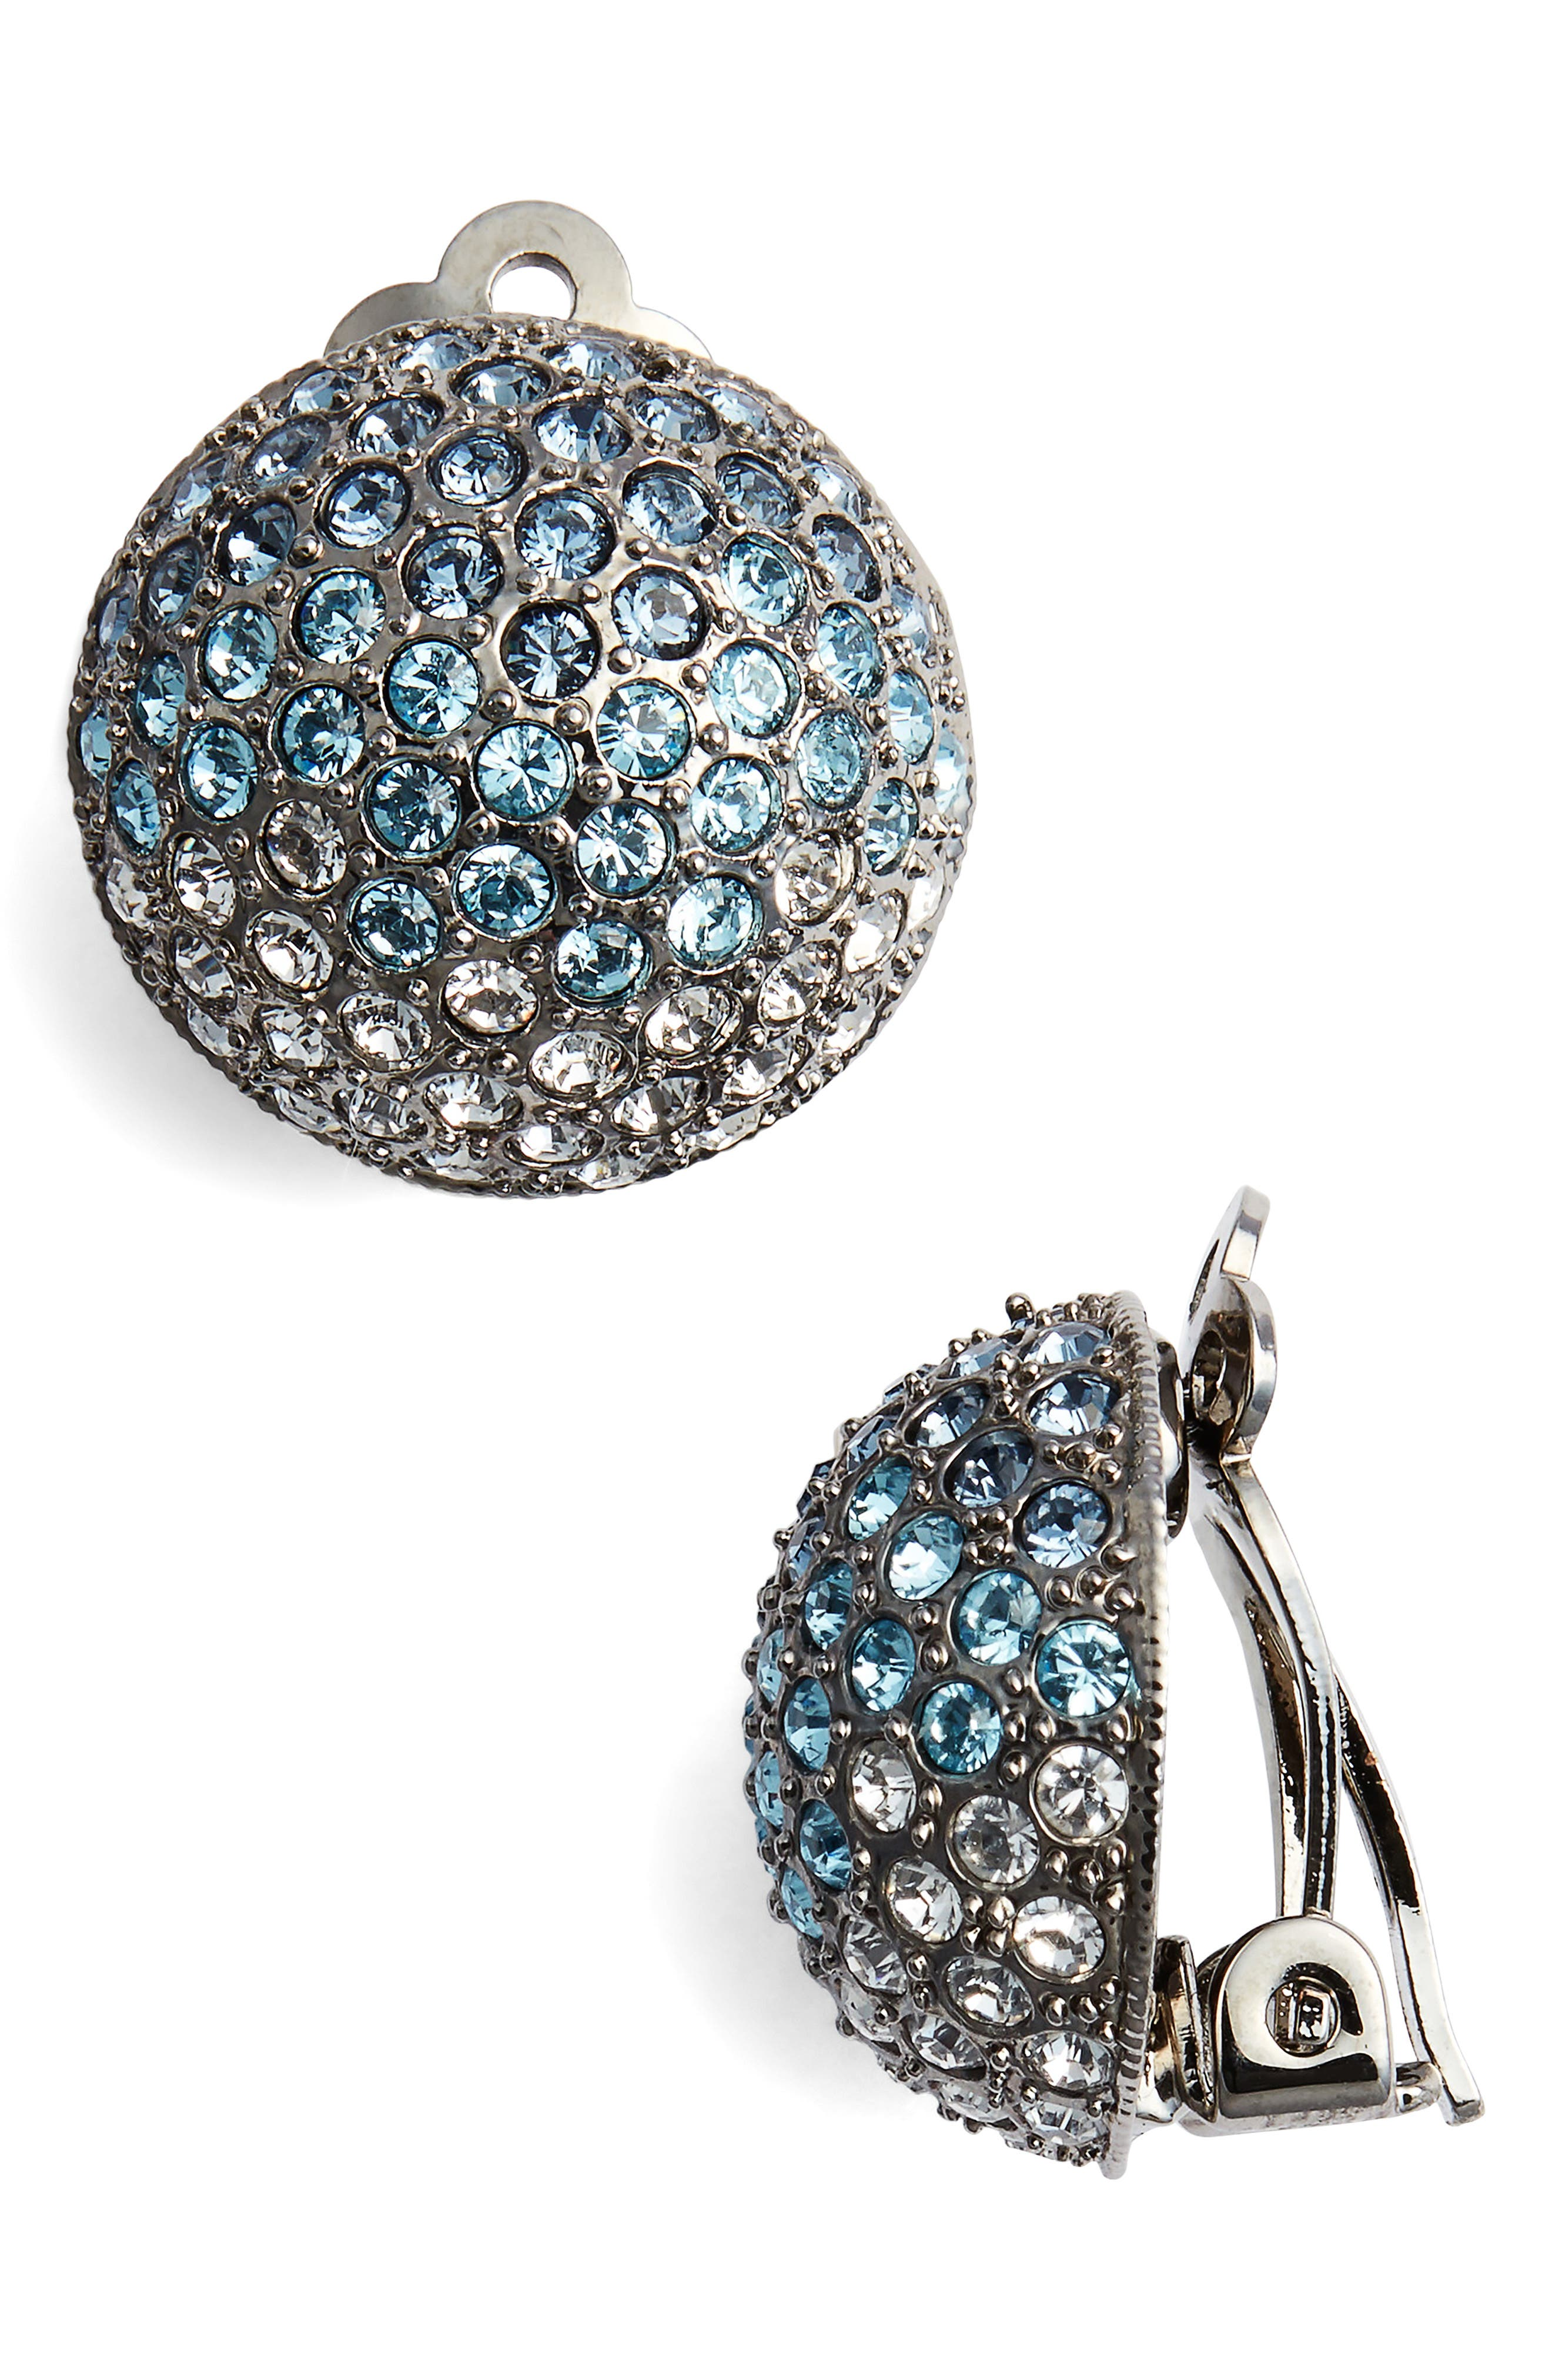 Medium Pavé Button Clip Earrings,                         Main,                         color, Black/ Ombre Denim Blue Multi